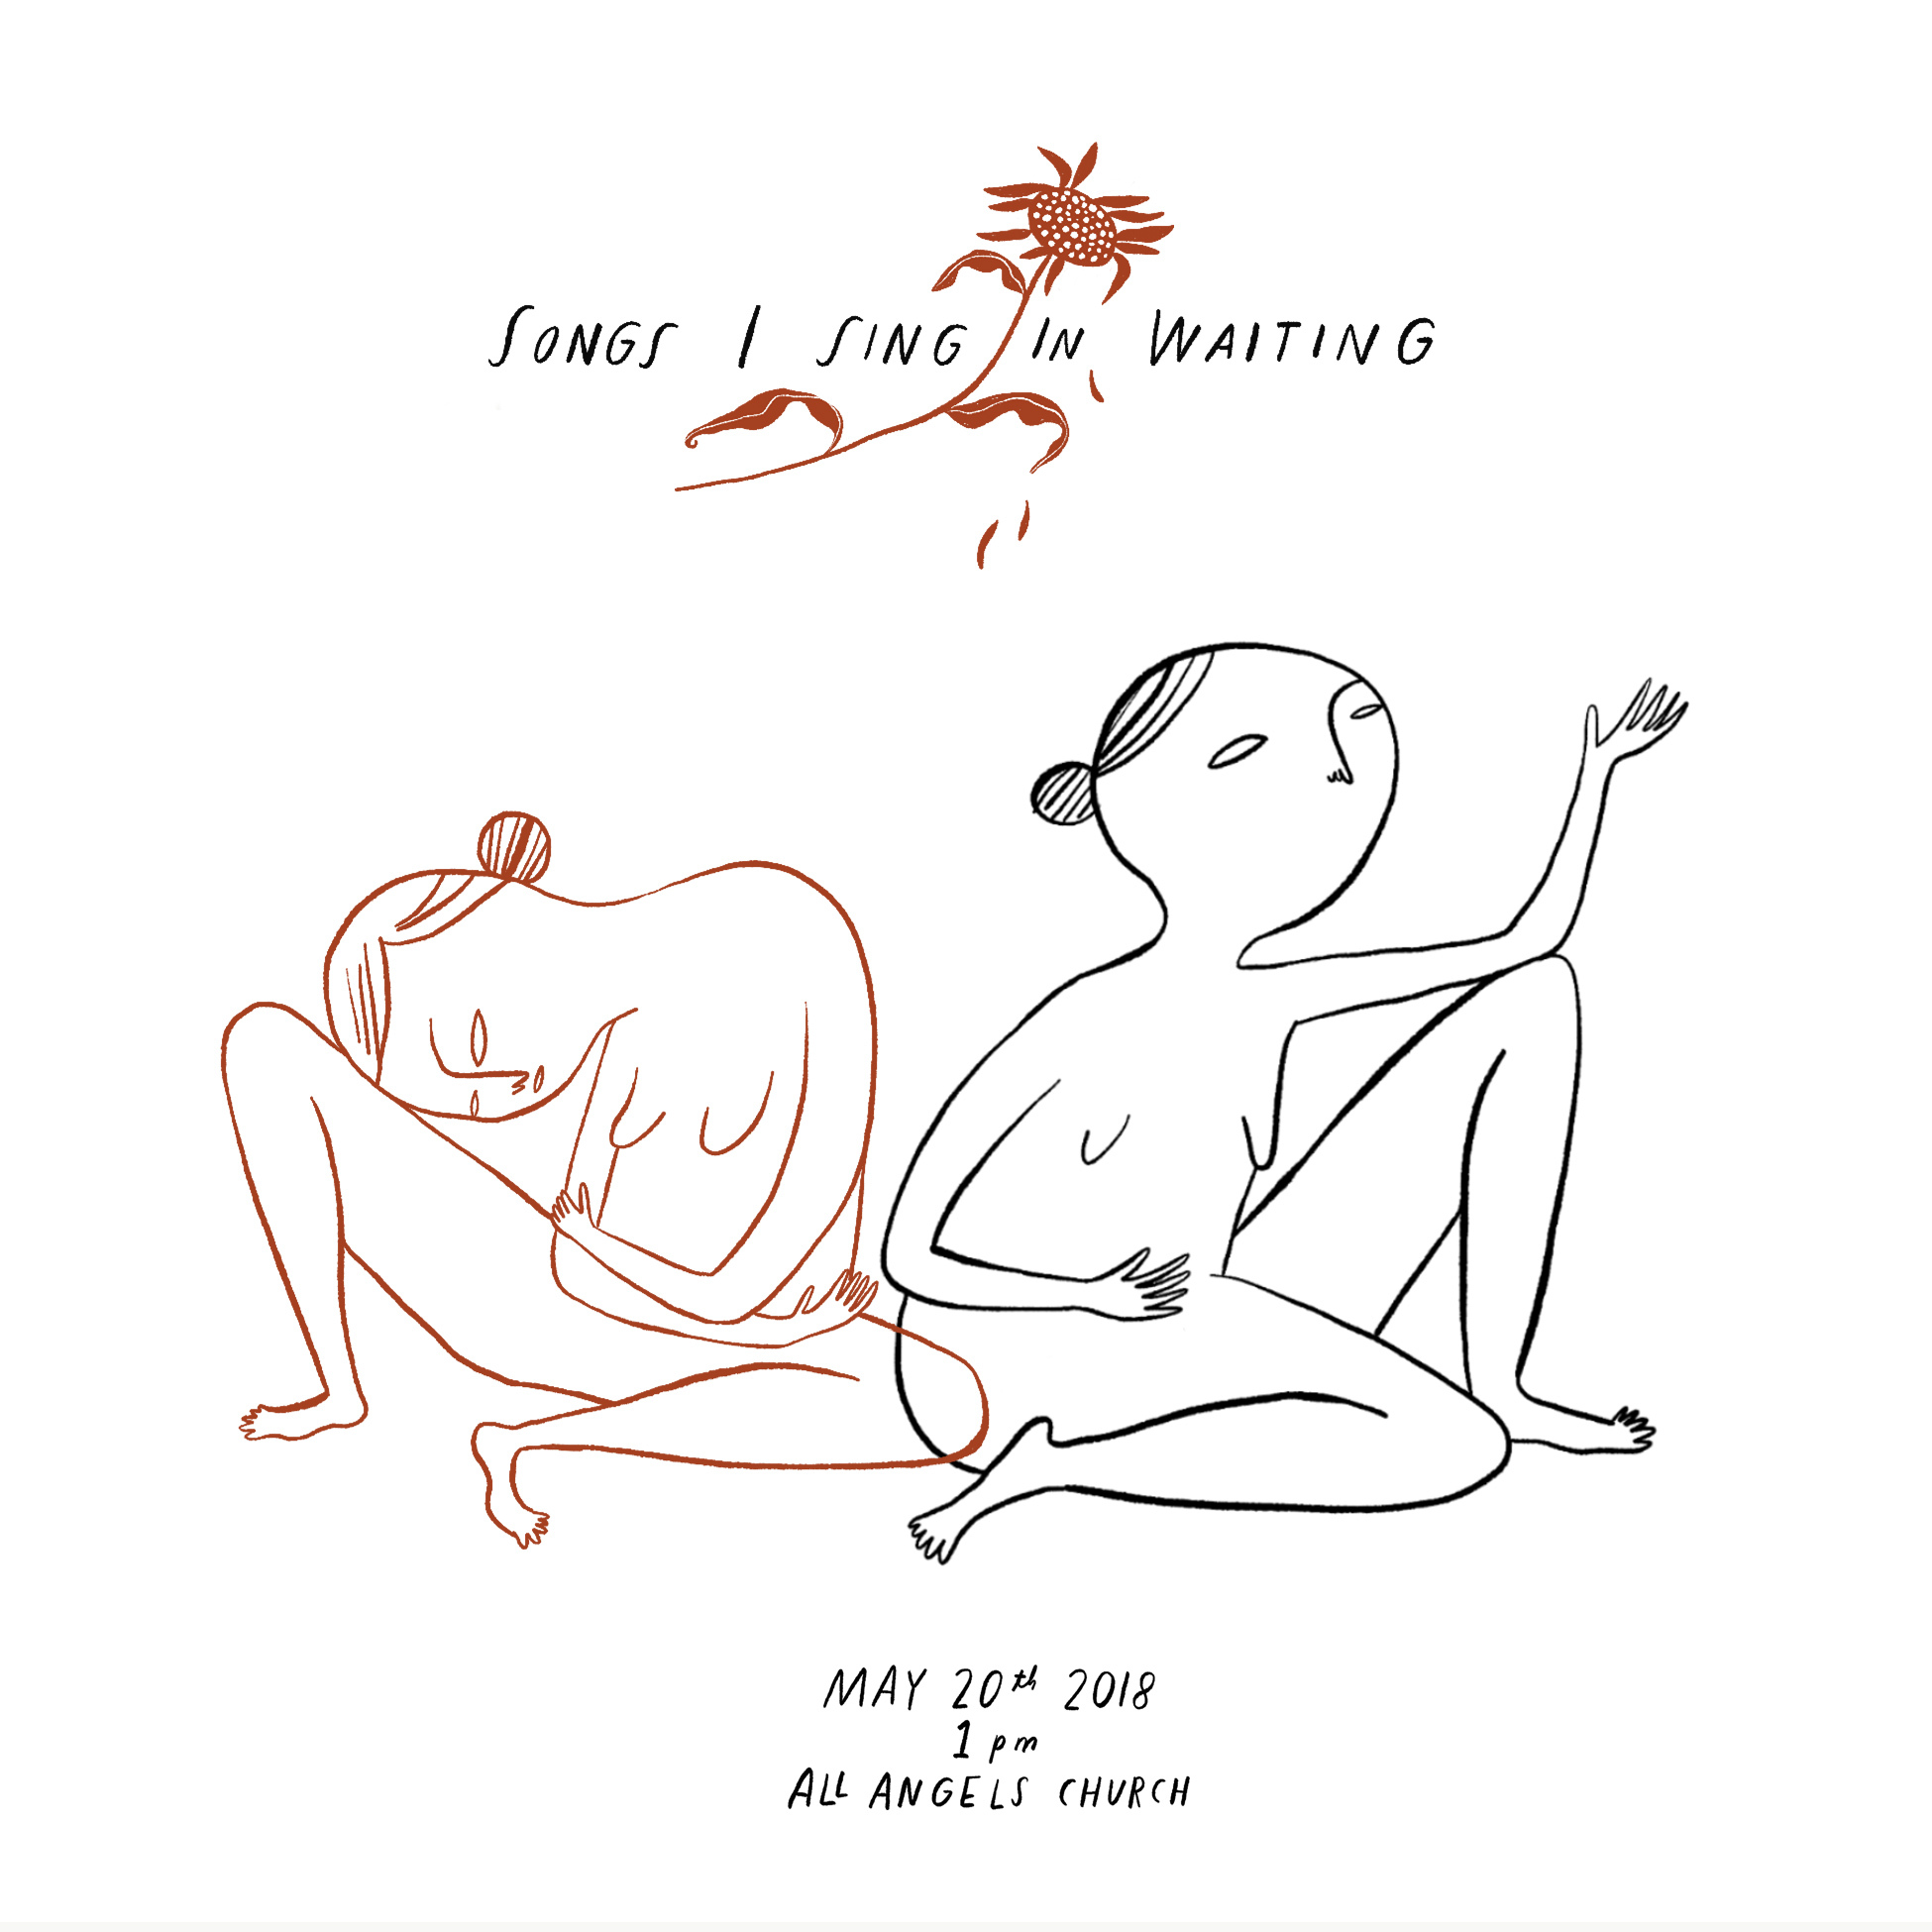 Songs I Sing In Waiting - program cover